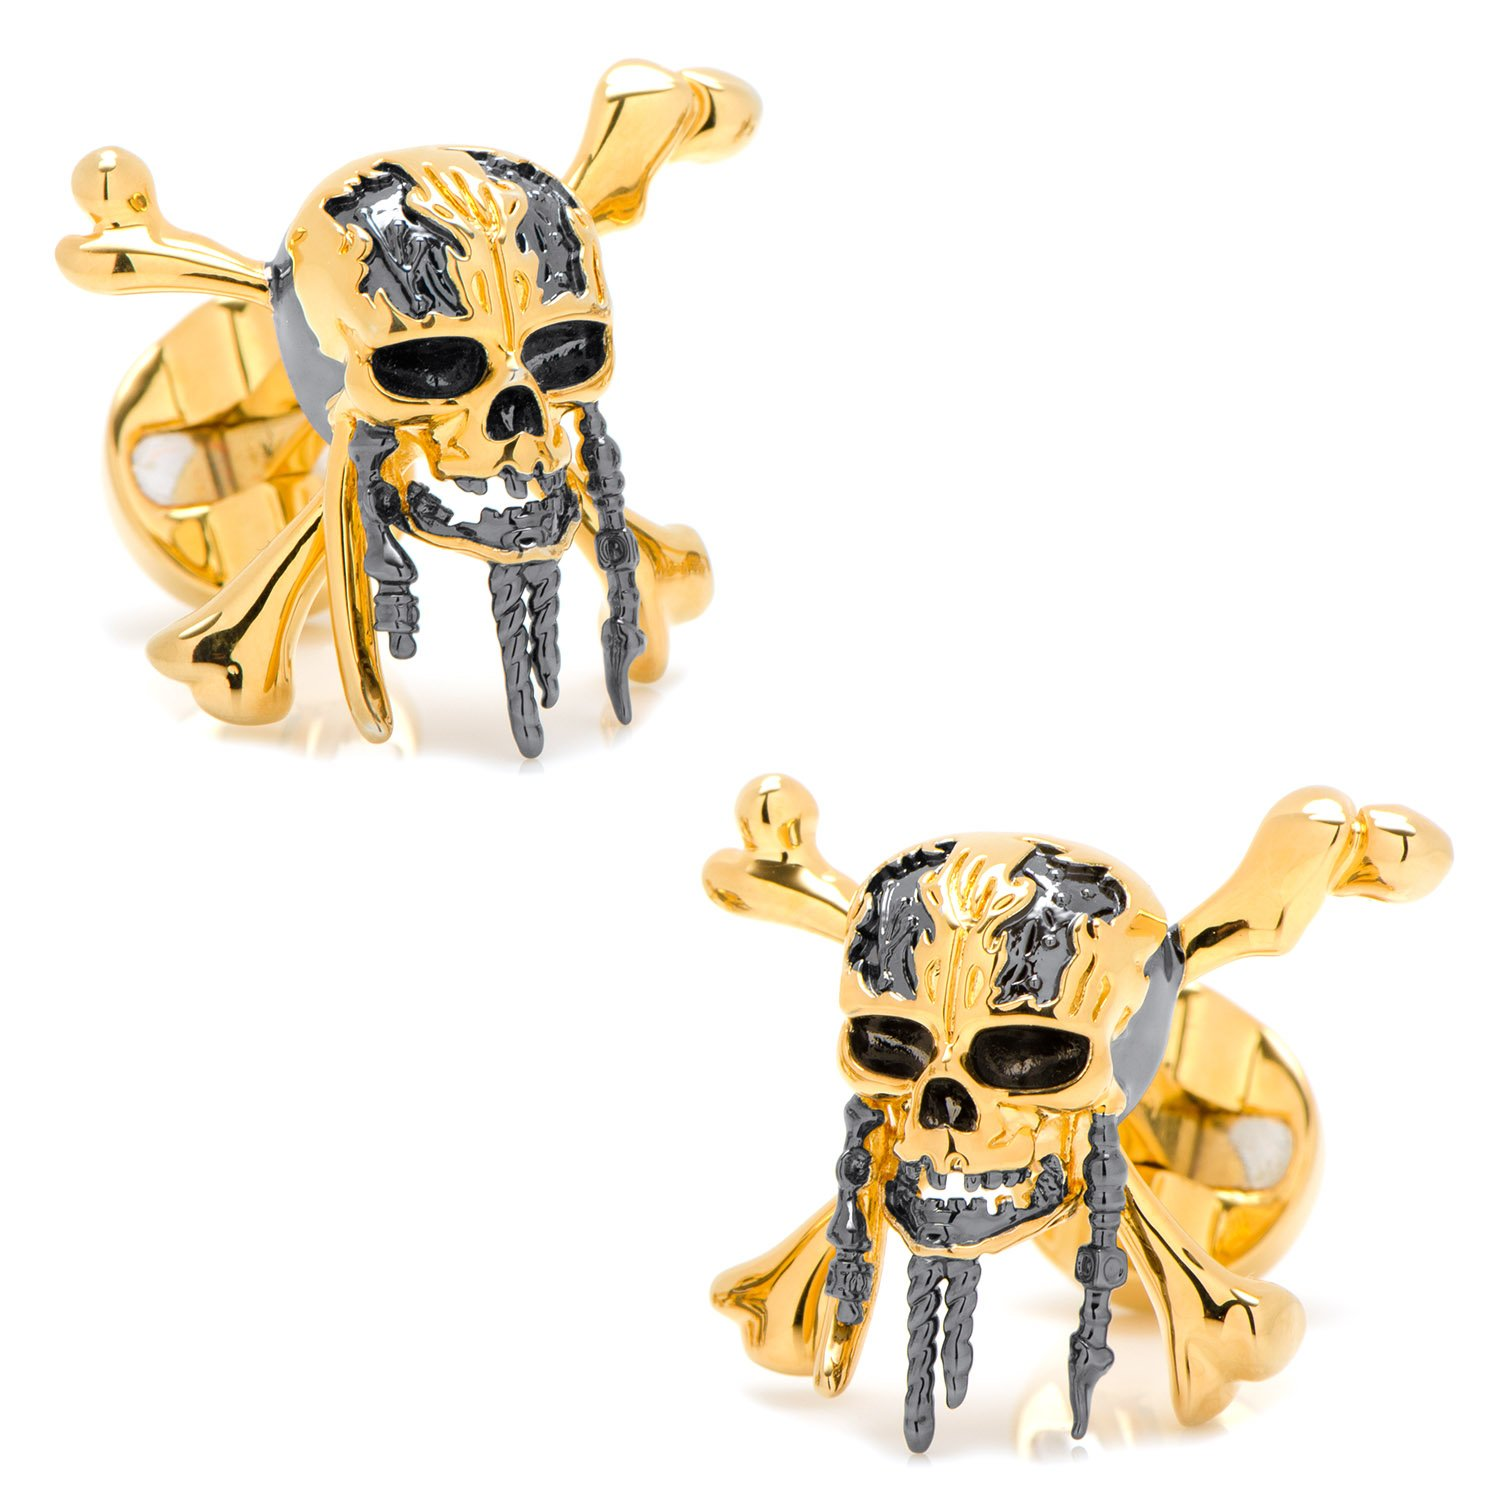 Disney 3D Black and Gold Skull and Crossbones Cufflinks, Officially Licensed by Cufflinks (Image #2)